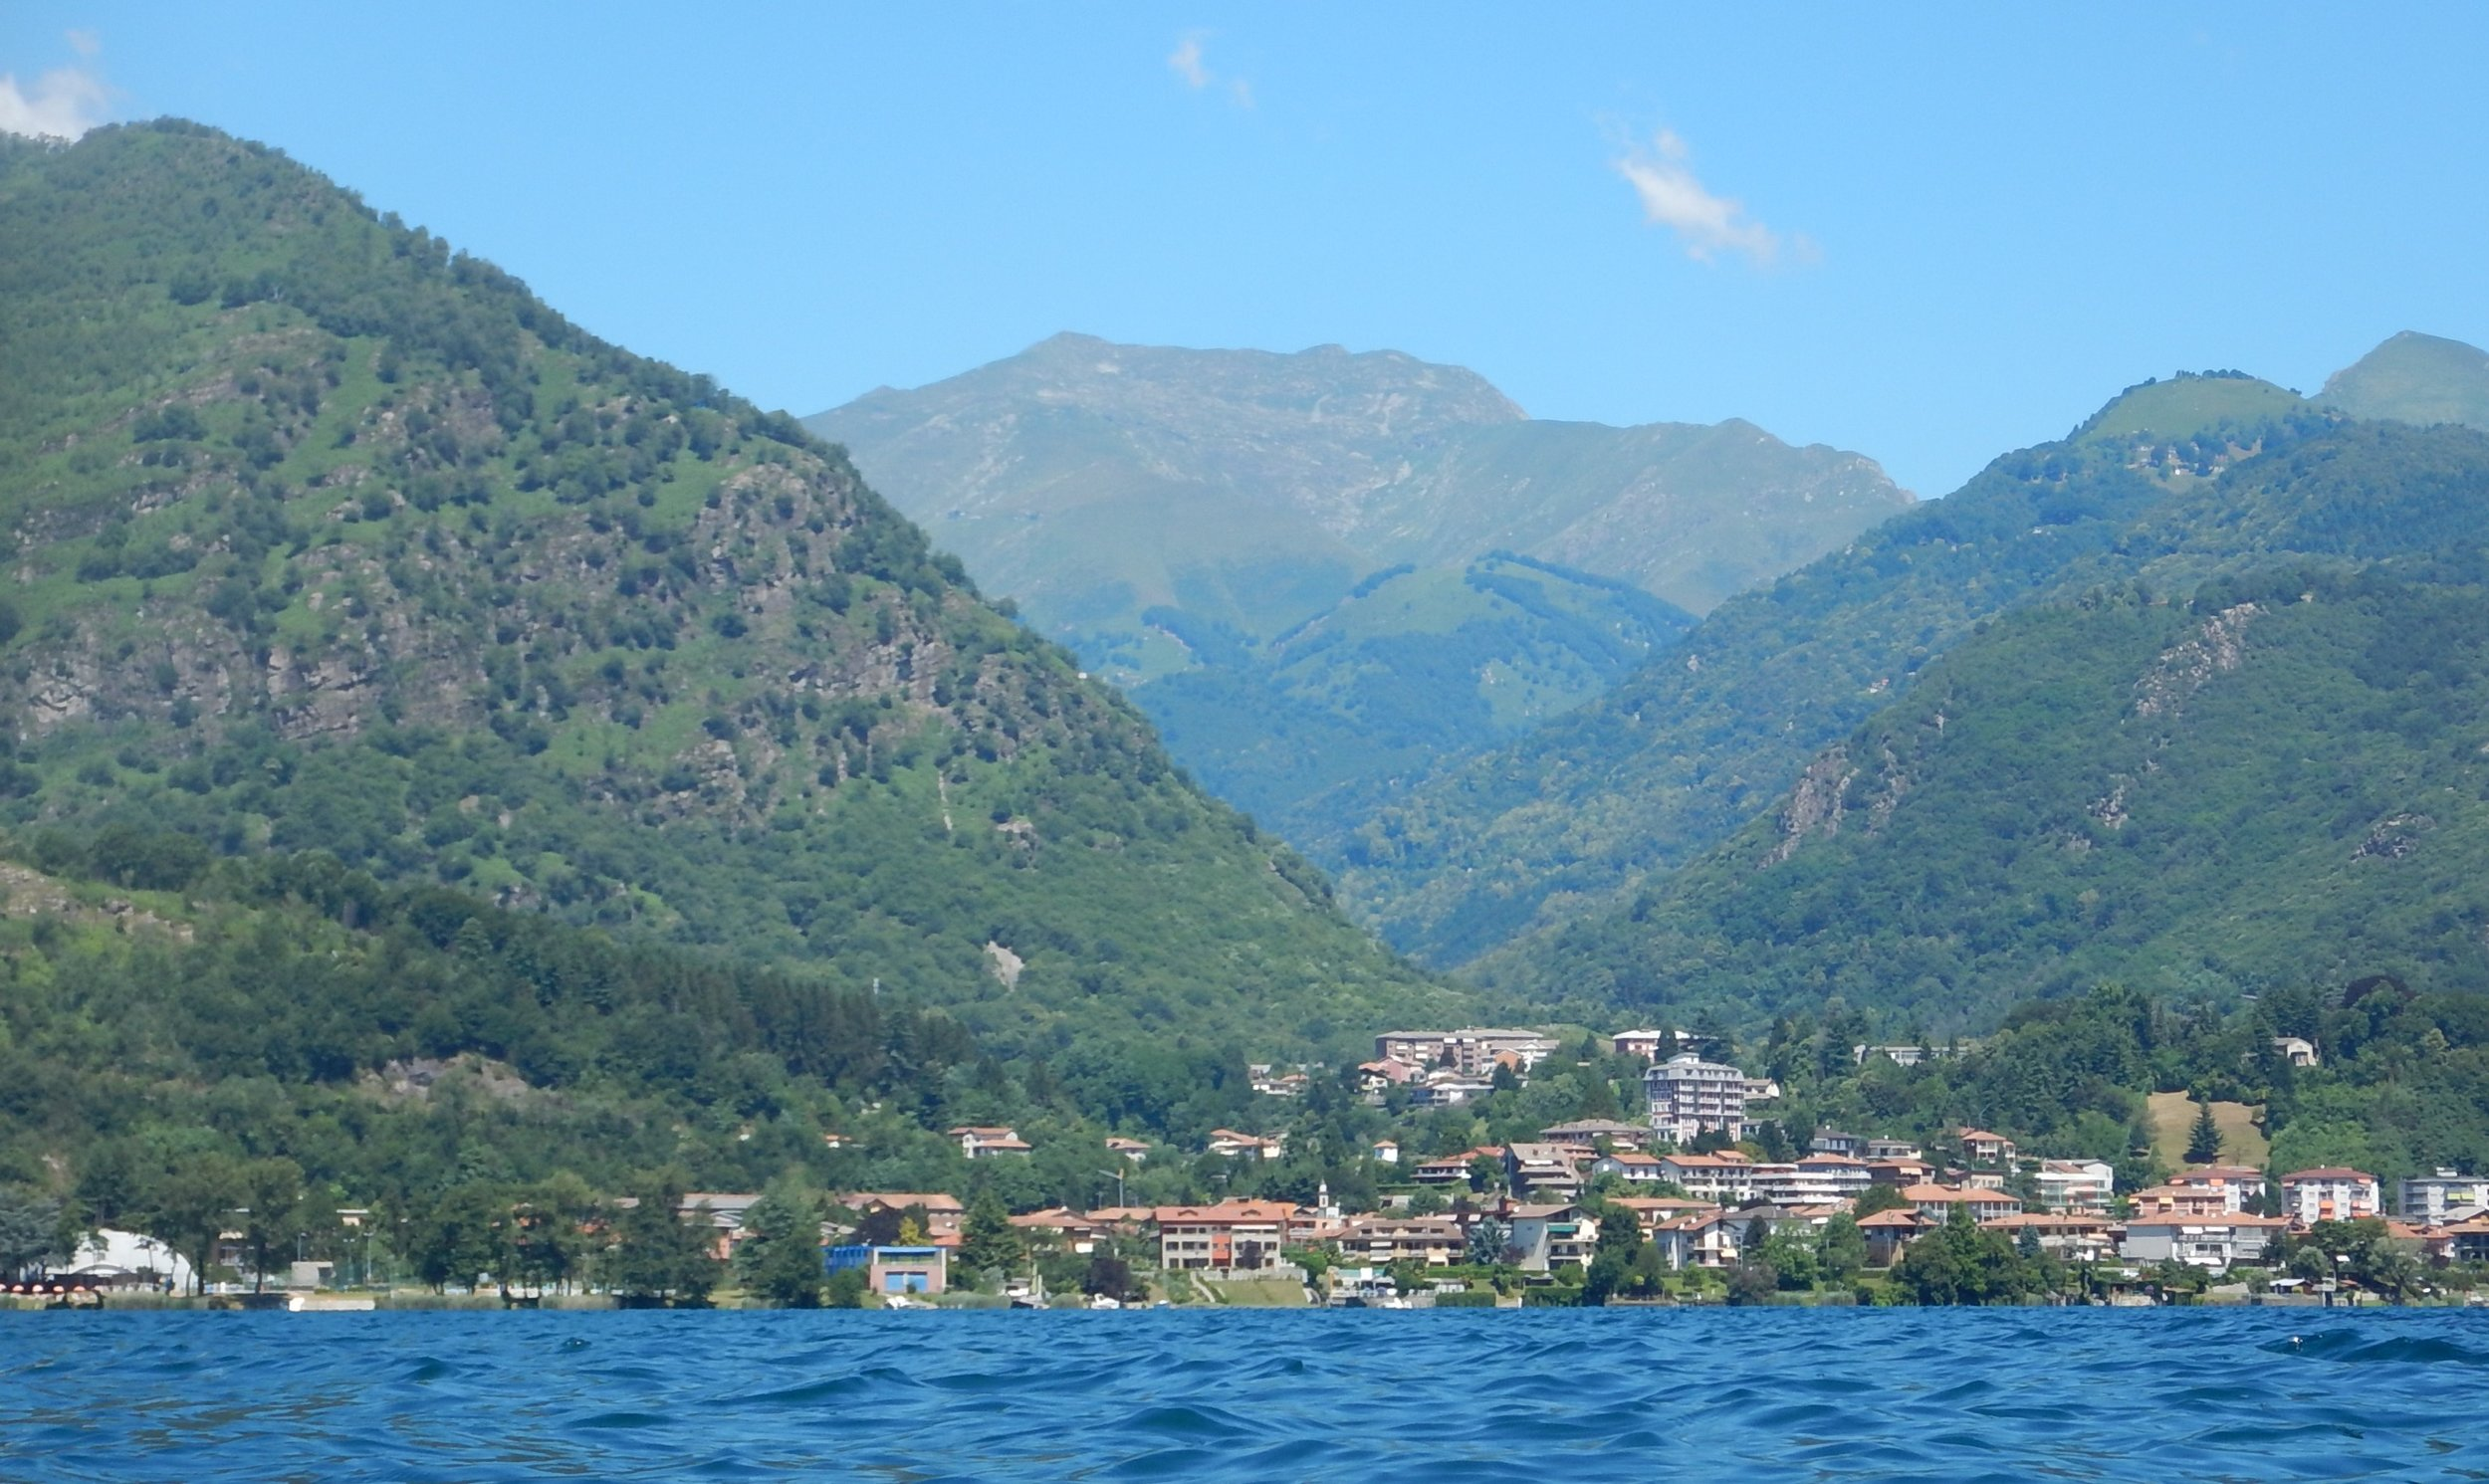 another village across the lake.